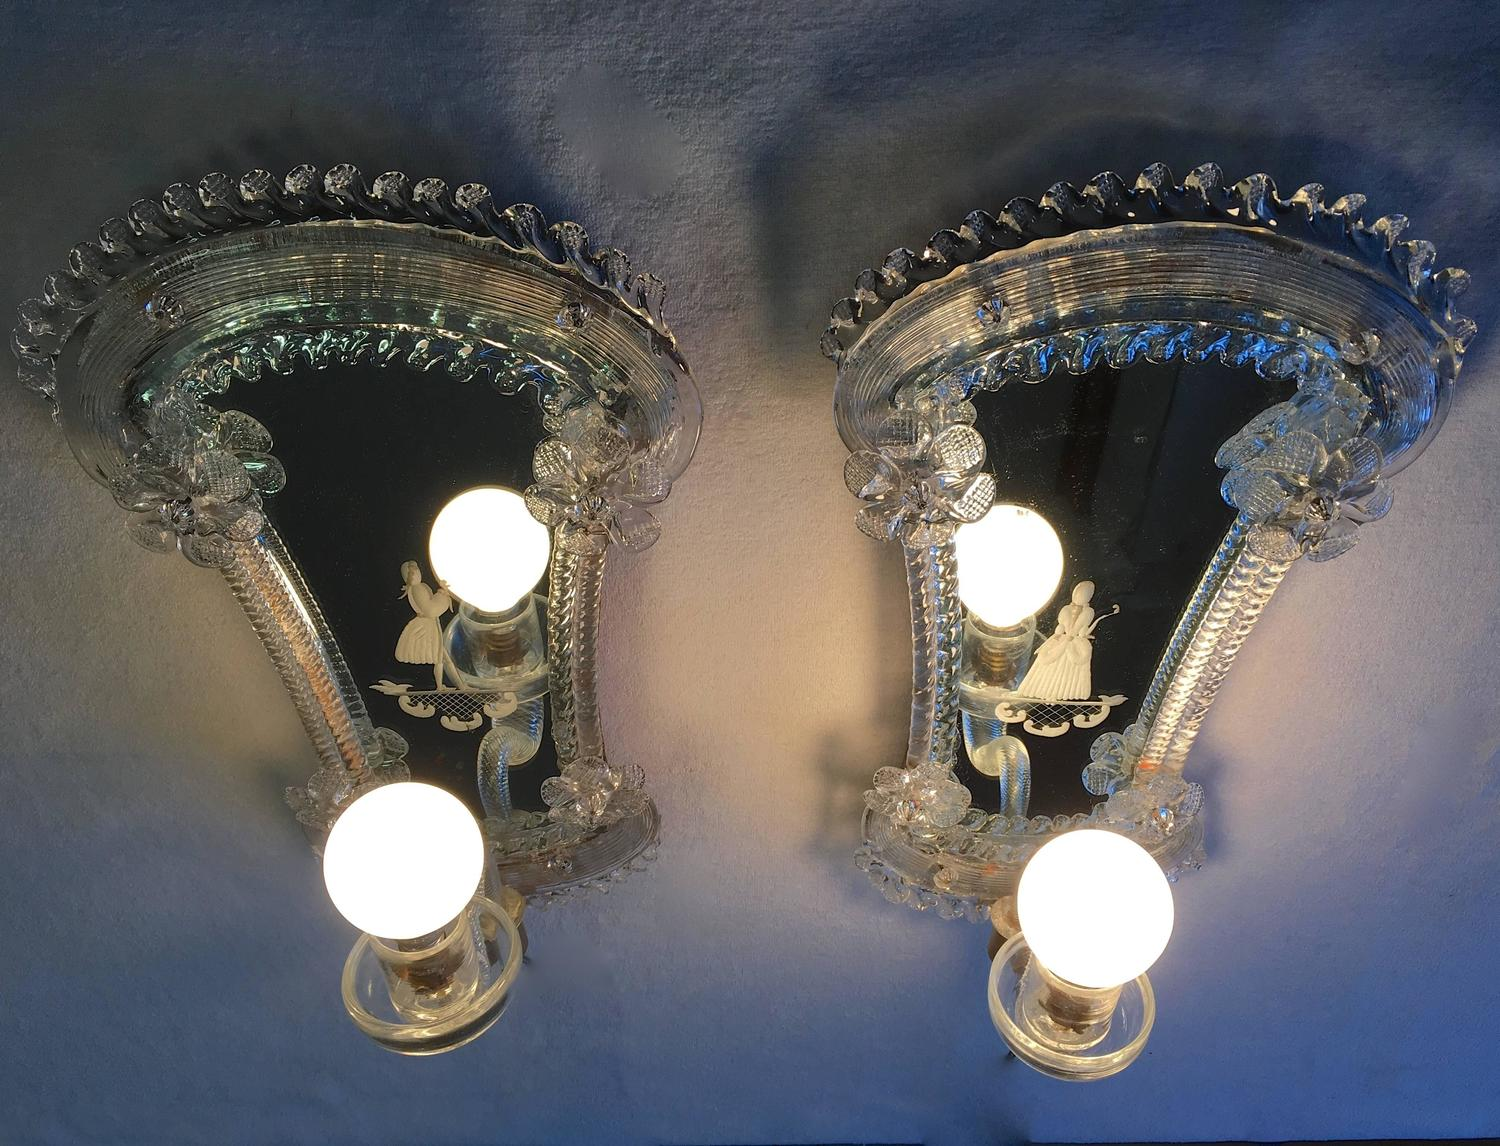 Venetian Glass Wall Lights : Pair of Classic Venetian Glass Wall Lights For Sale at 1stdibs